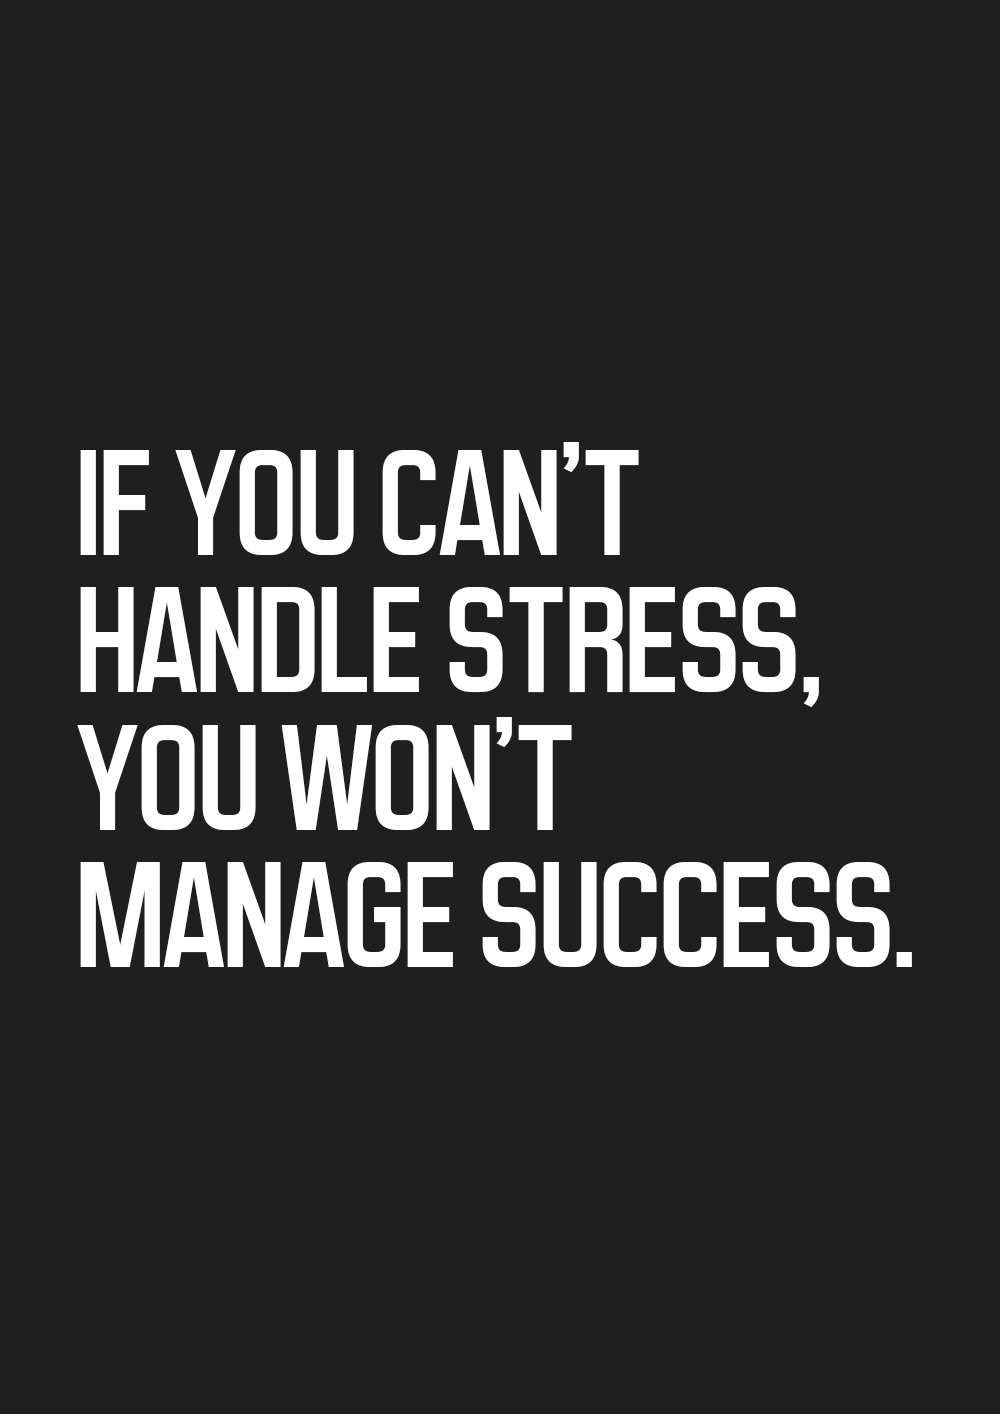 Work Stress Quotes 50 Highly Motivational Quotes That Will Prepare You for 2019